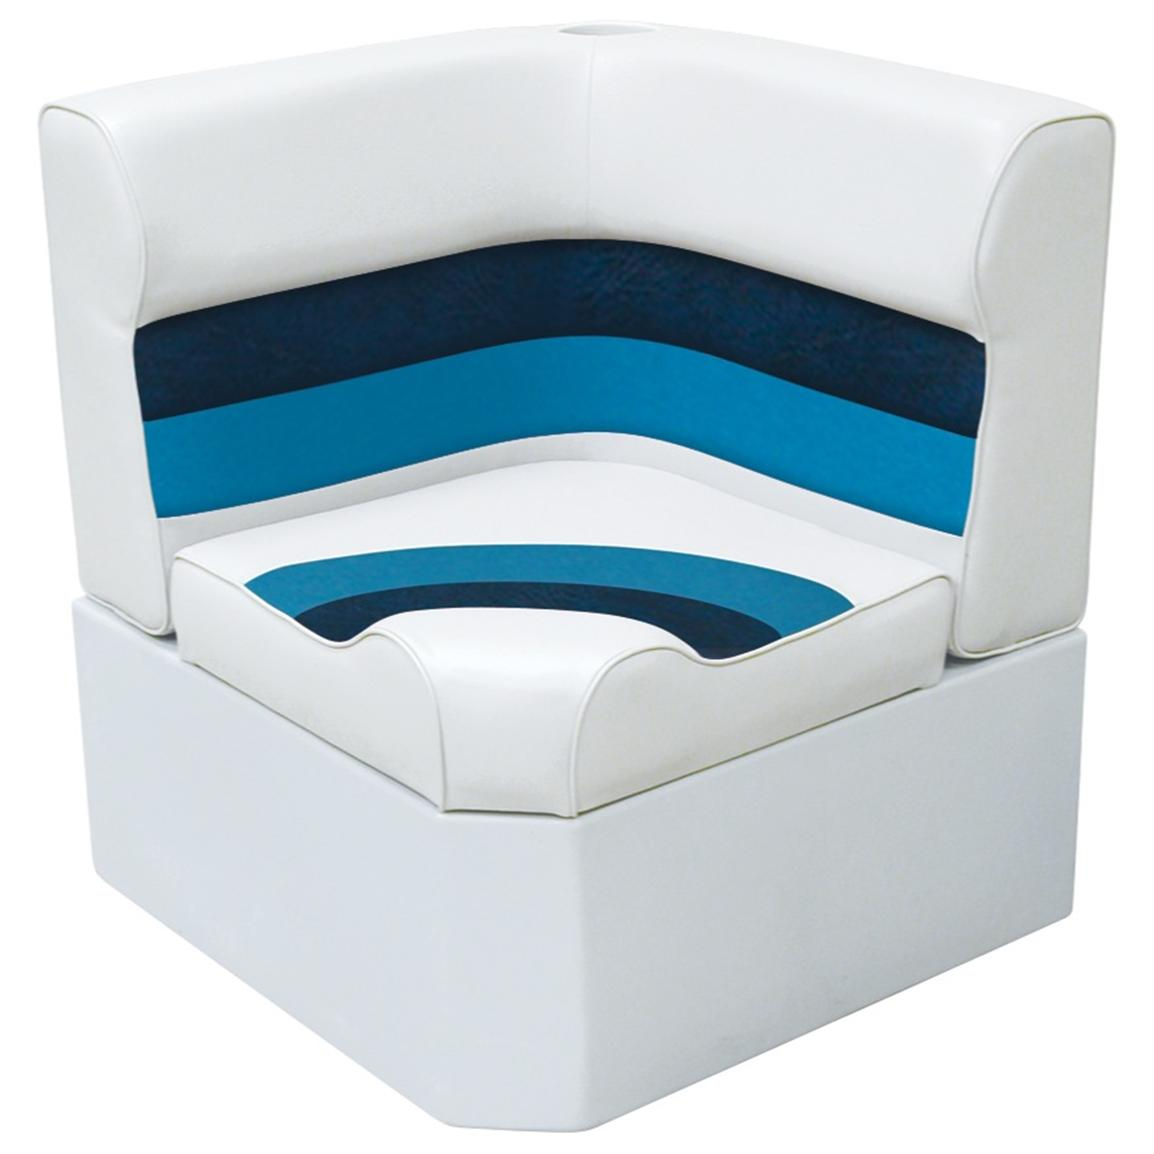 Wise® Deluxe Corner Pontoon Seat, White / Navy / Blue